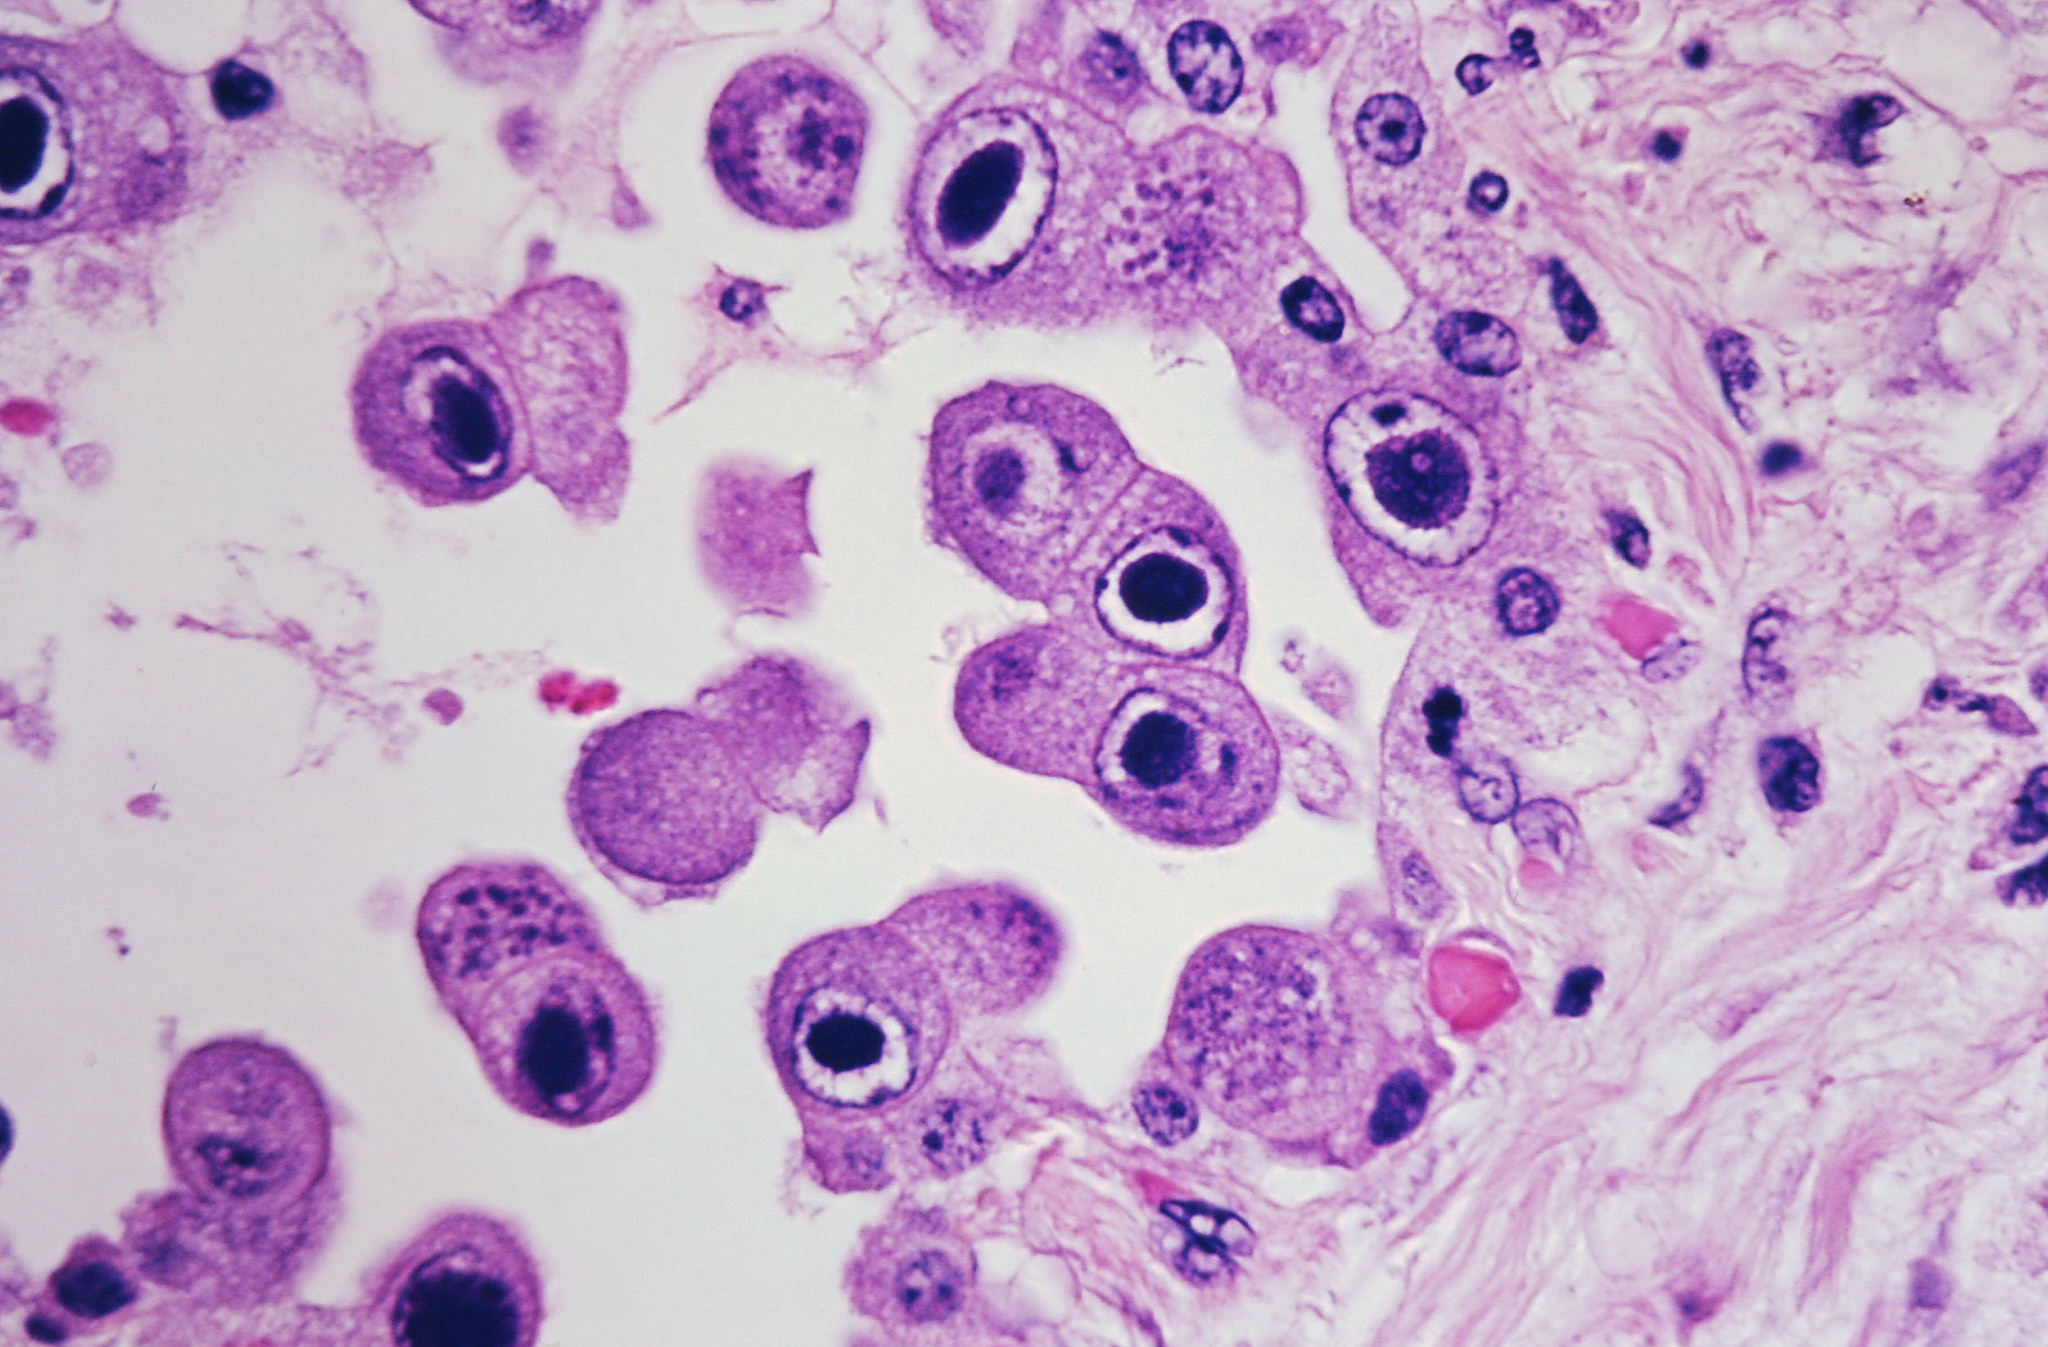 CMV infected pneumocytes. Source: Dr. Yale Rosen